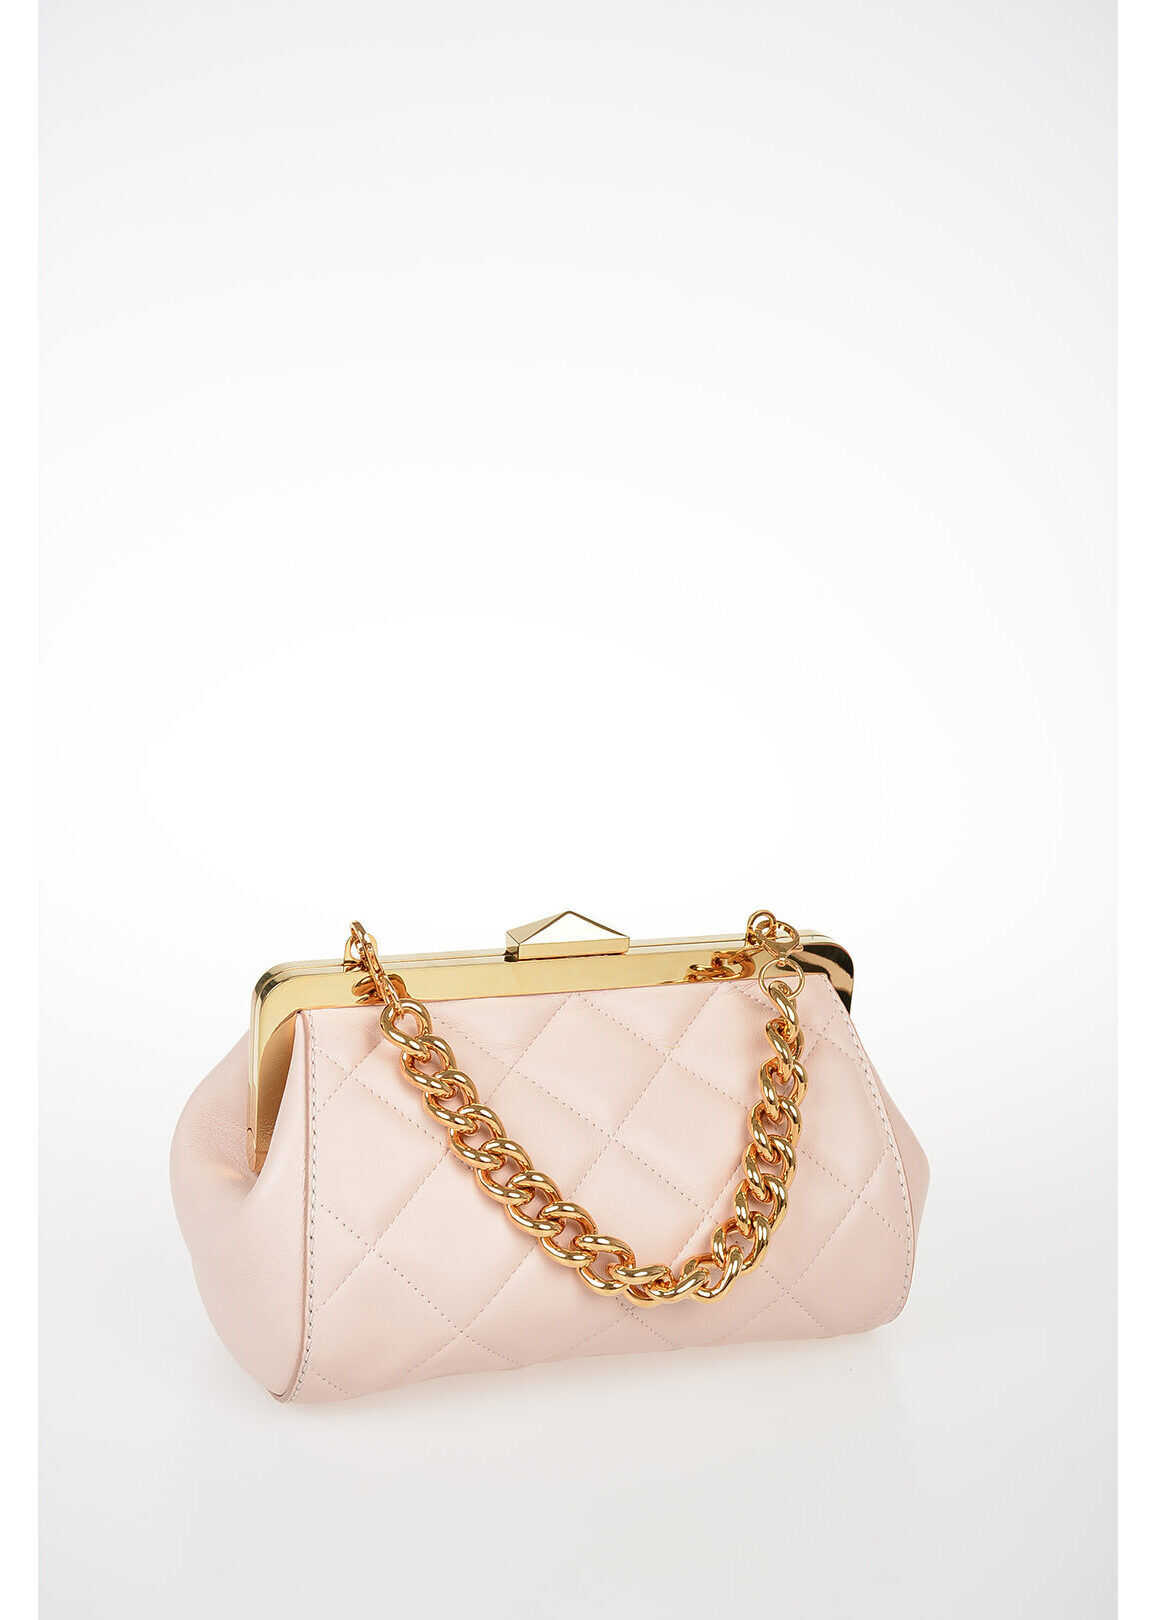 Alexander McQueen Quilted Leather Shoulder Bag PINK